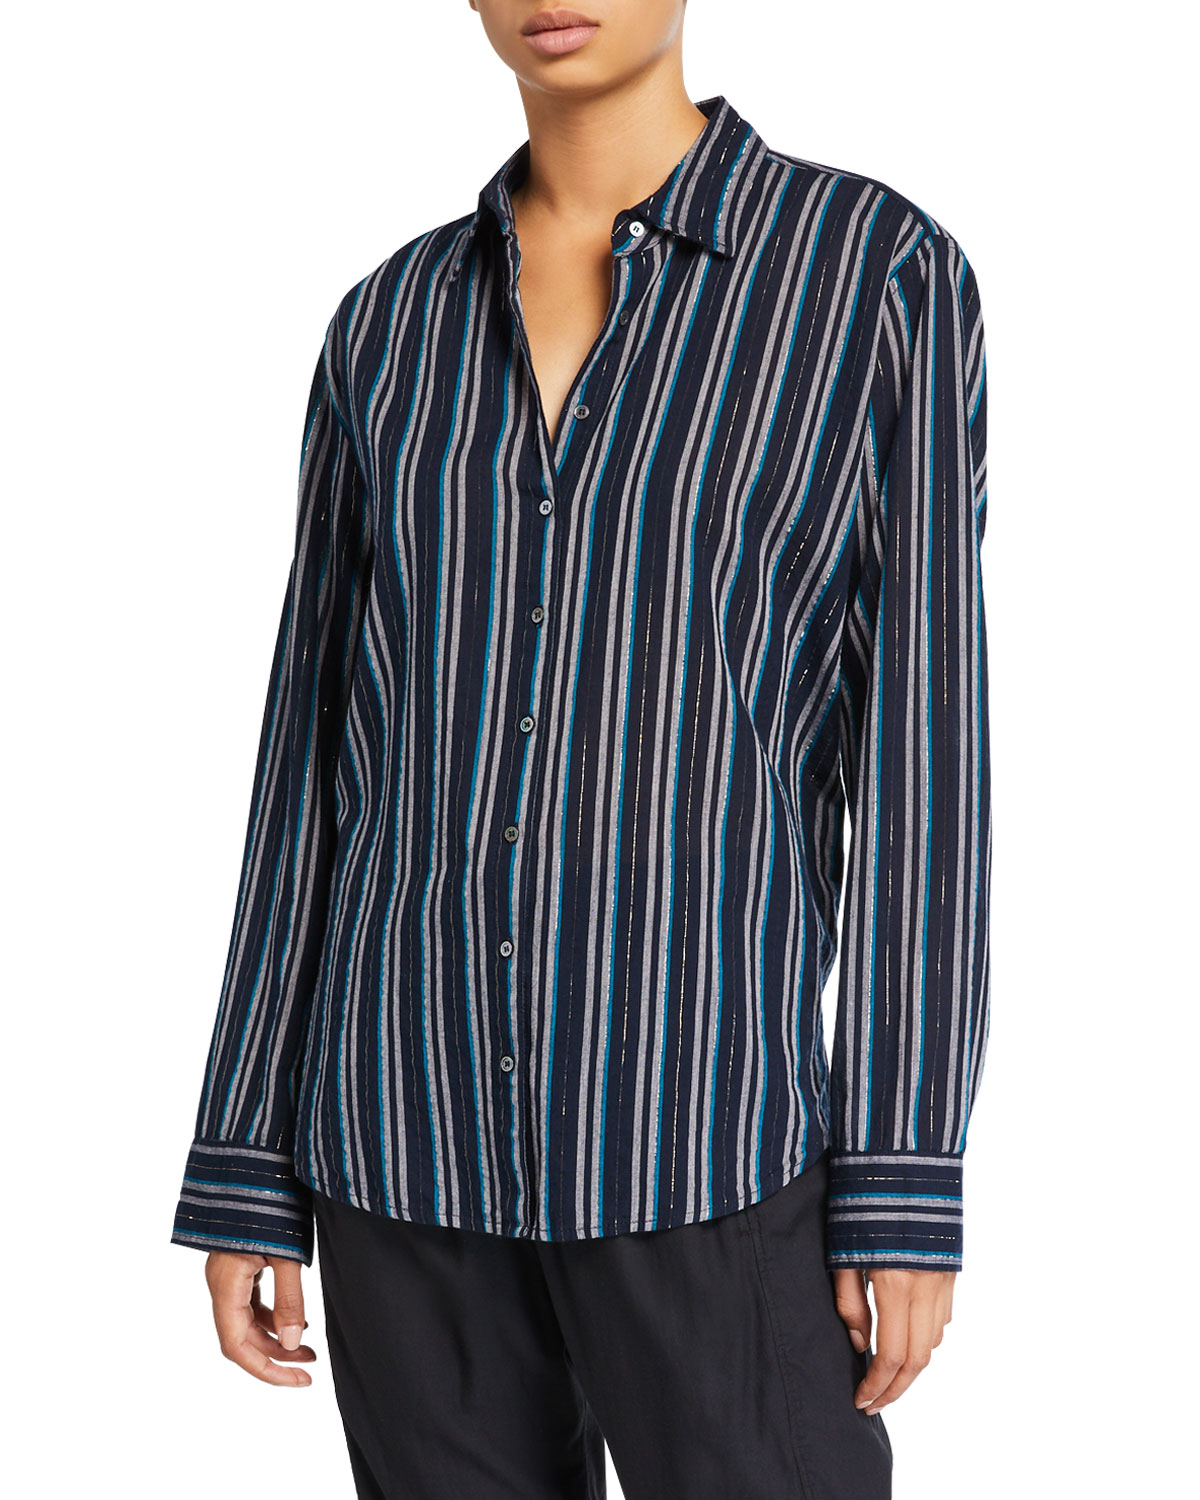 Xirena T-shirts BEAU STRIPED LOUNGE SHIRT